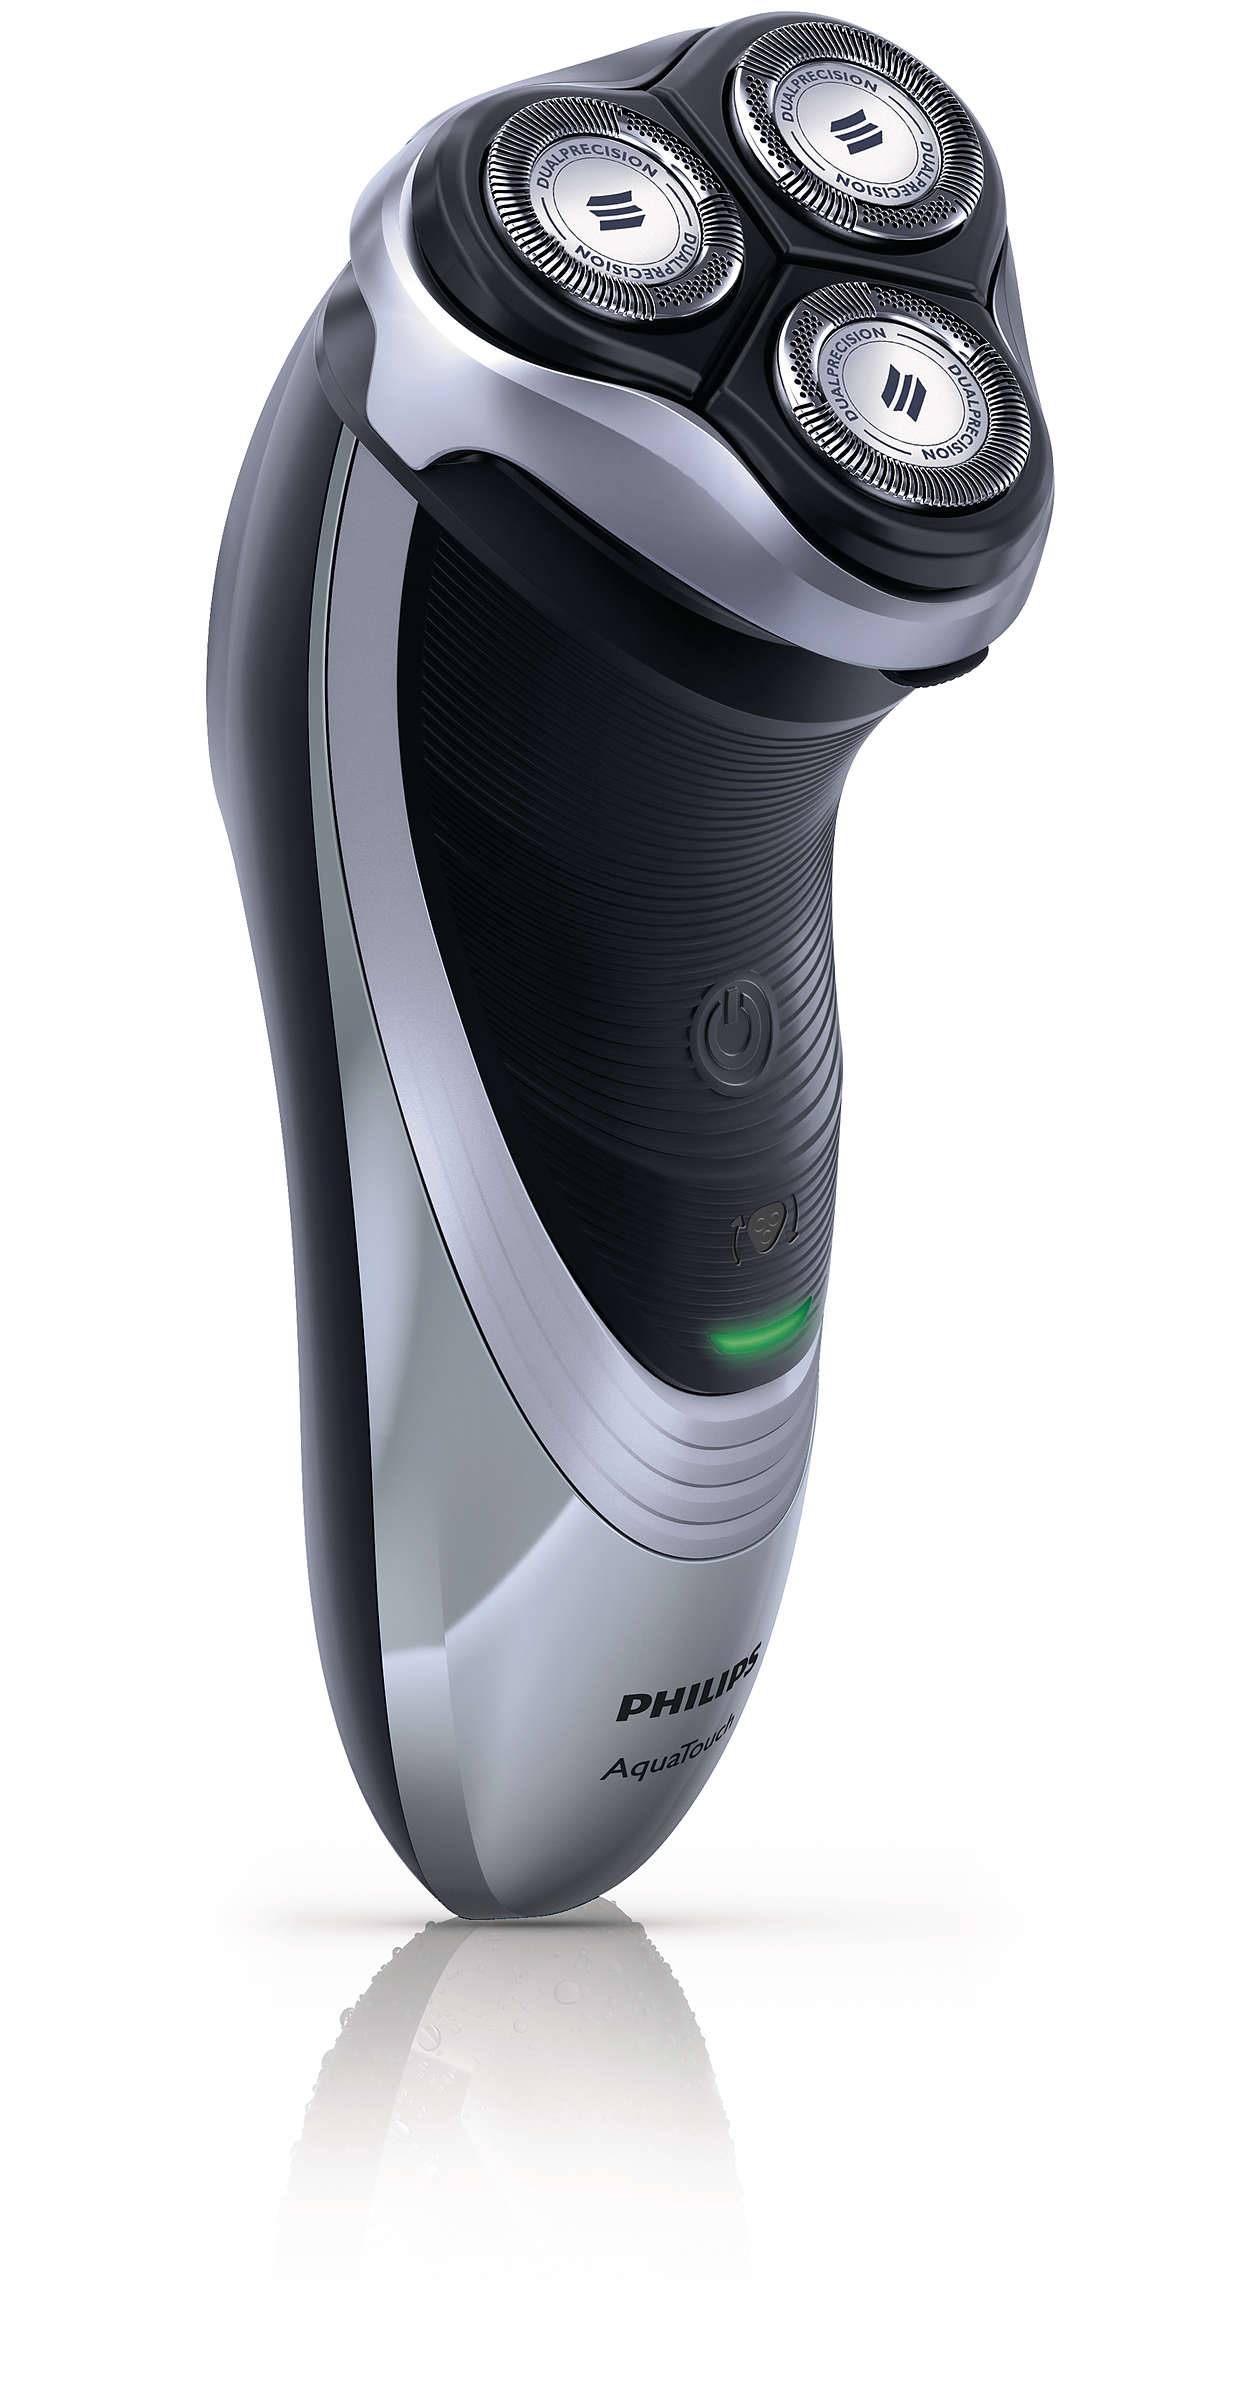 Aquatouch Wet And Dry Electric Shaver At891 16 Philips